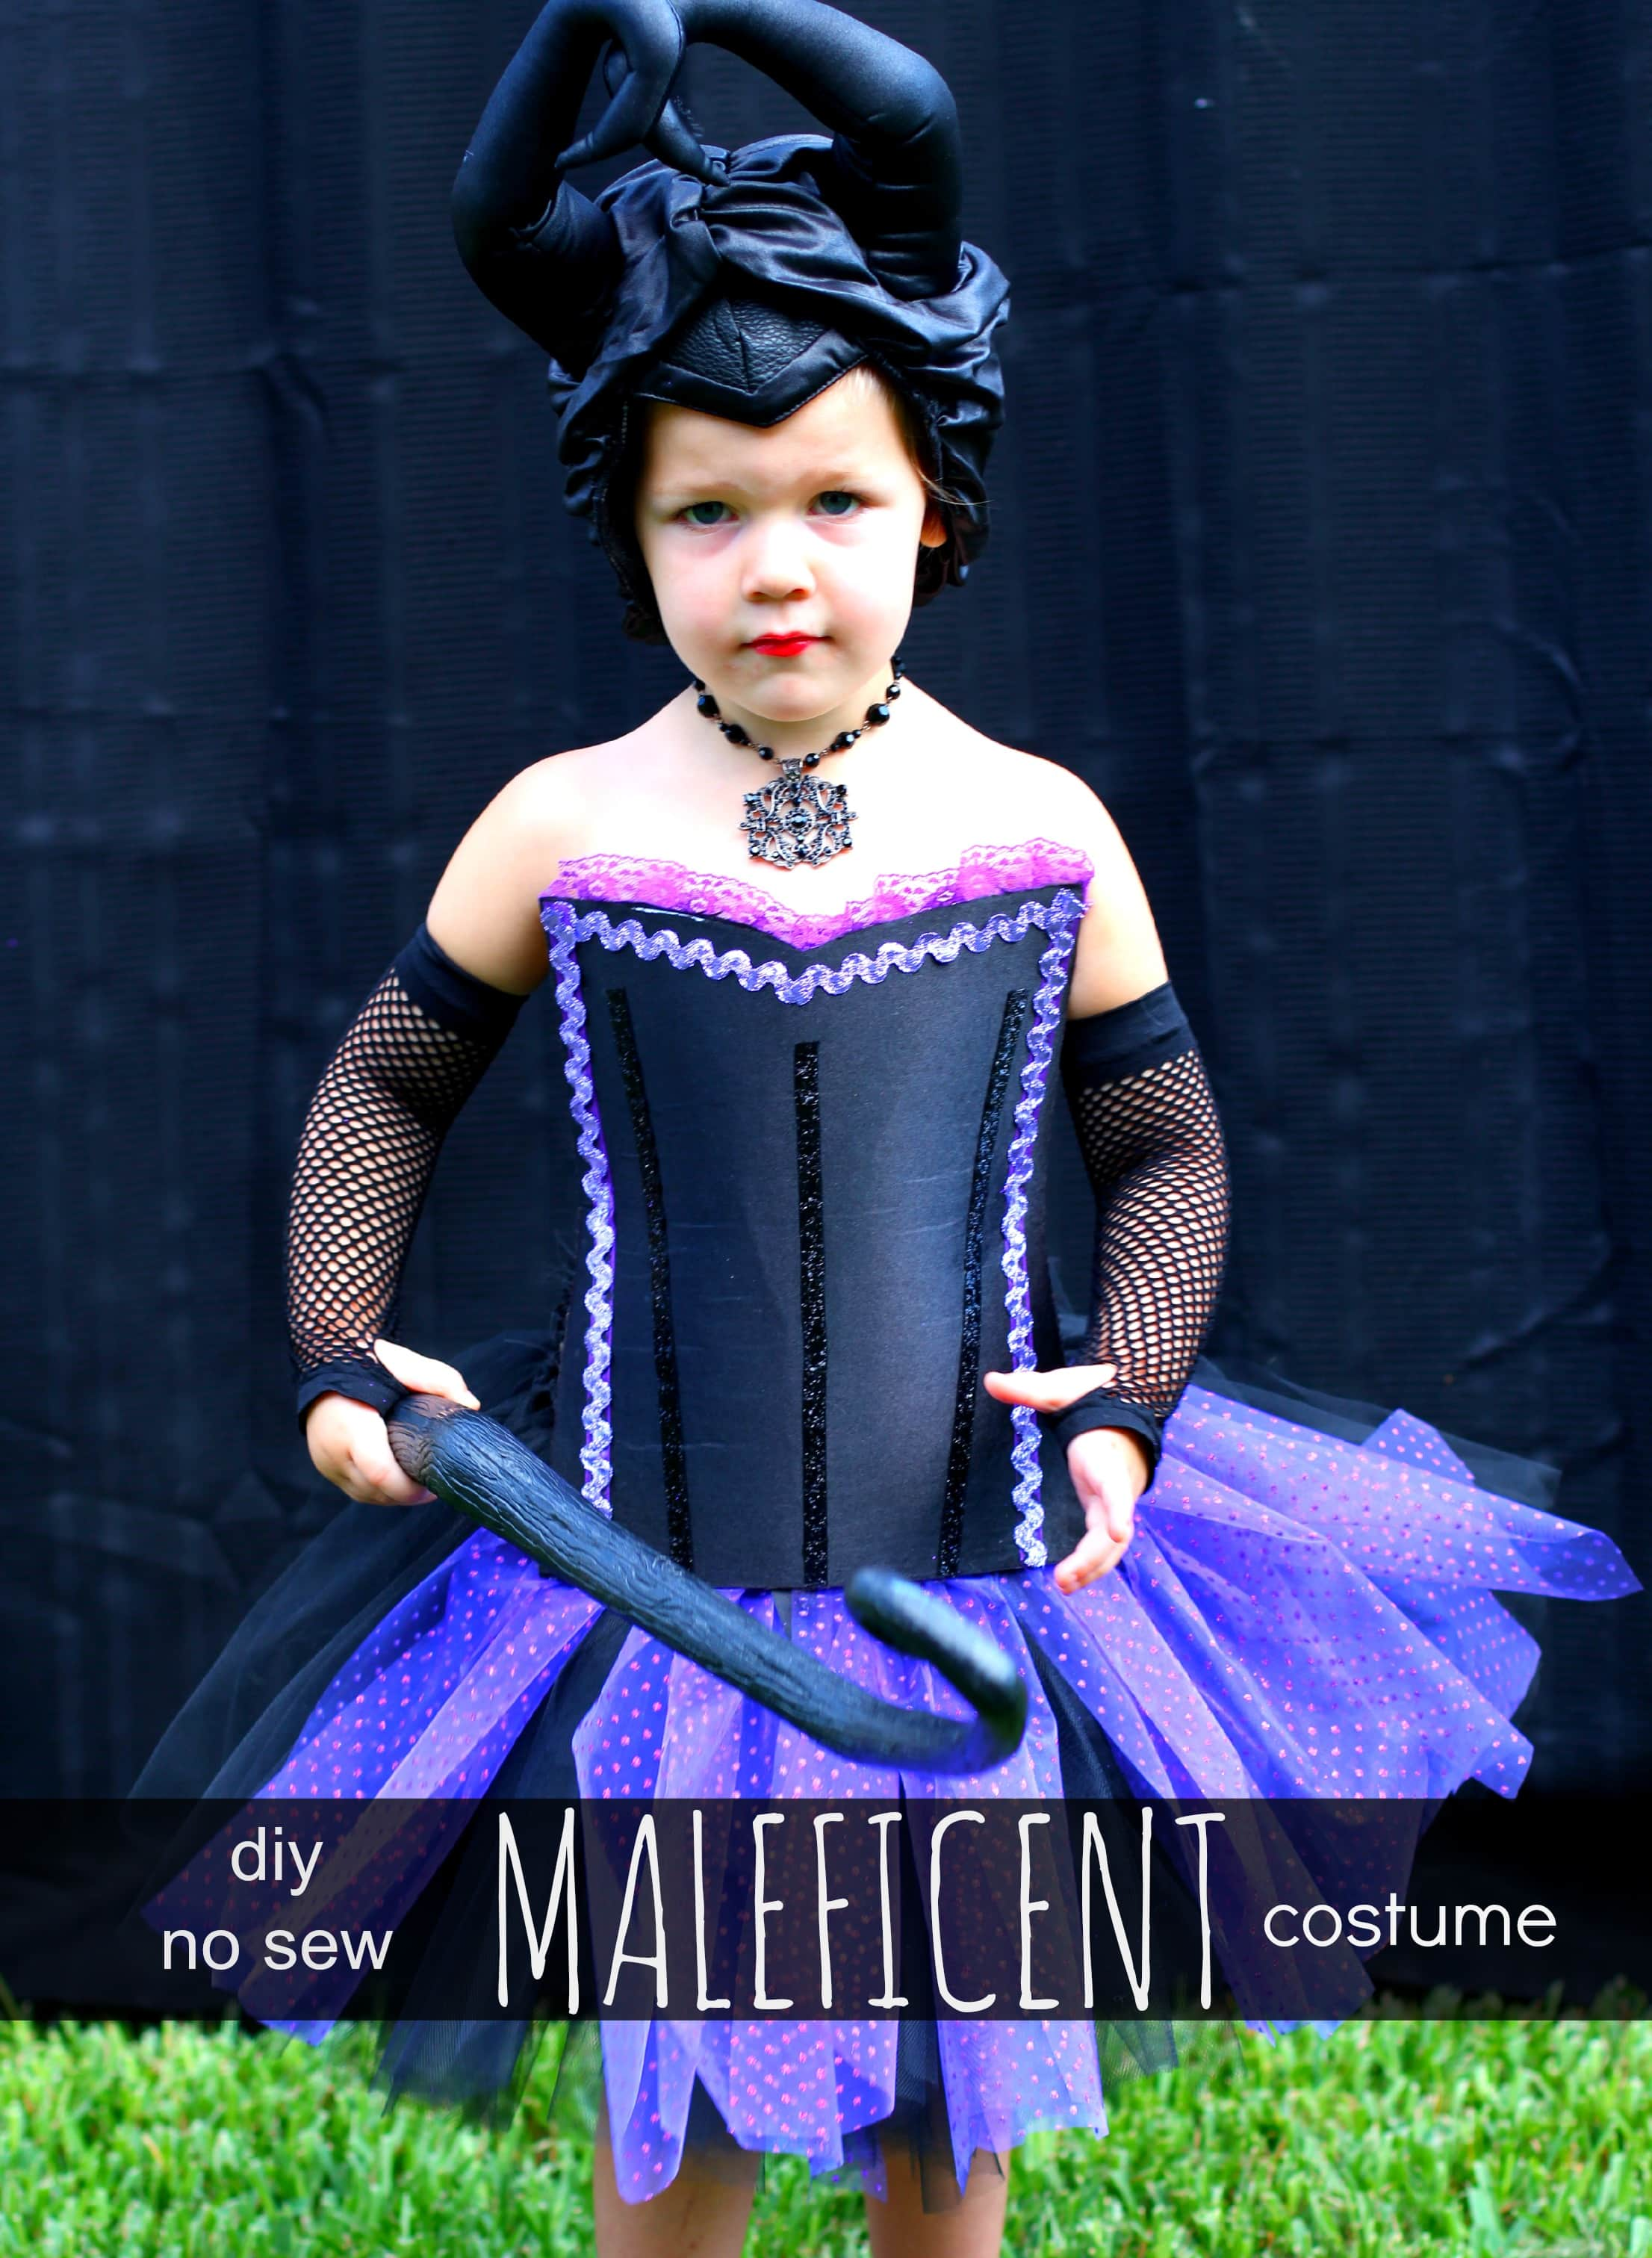 Diy No Sew Maleficent Costume Pinkwhen